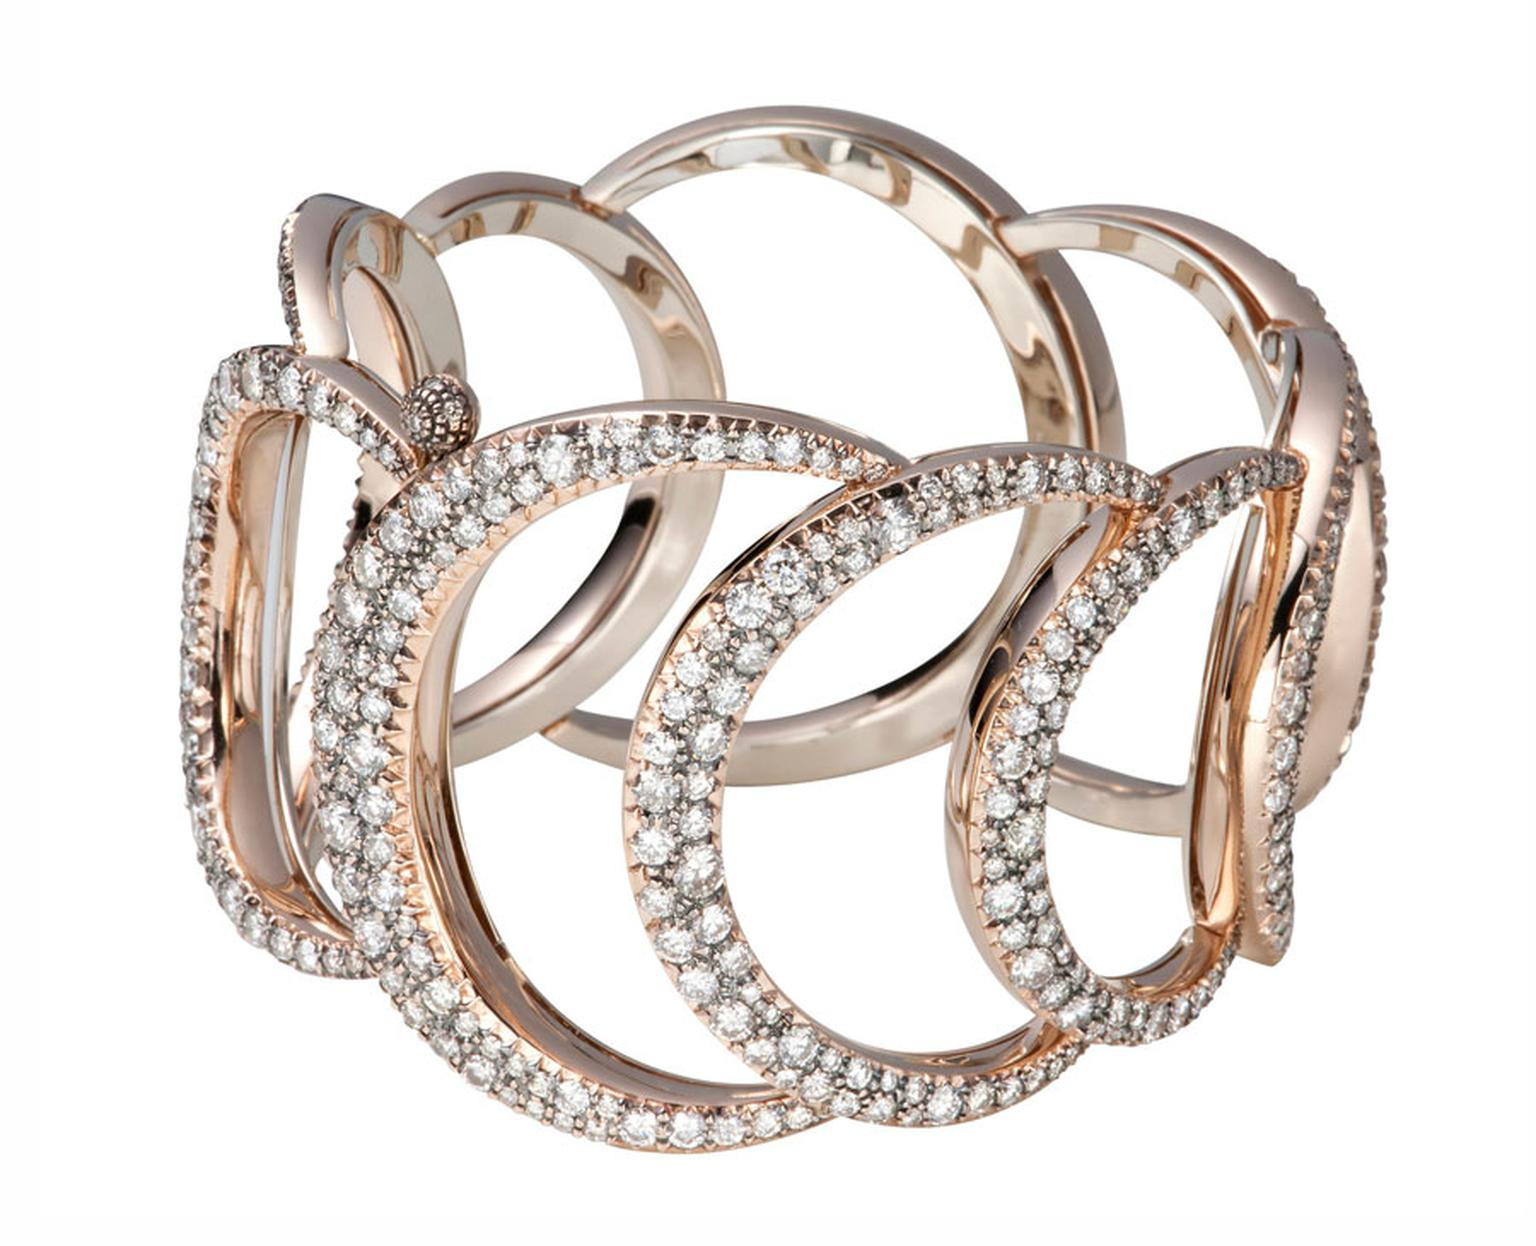 H-Stern-Bracelet-in-rose-and-Noble-gold-with-diamonds.jpg